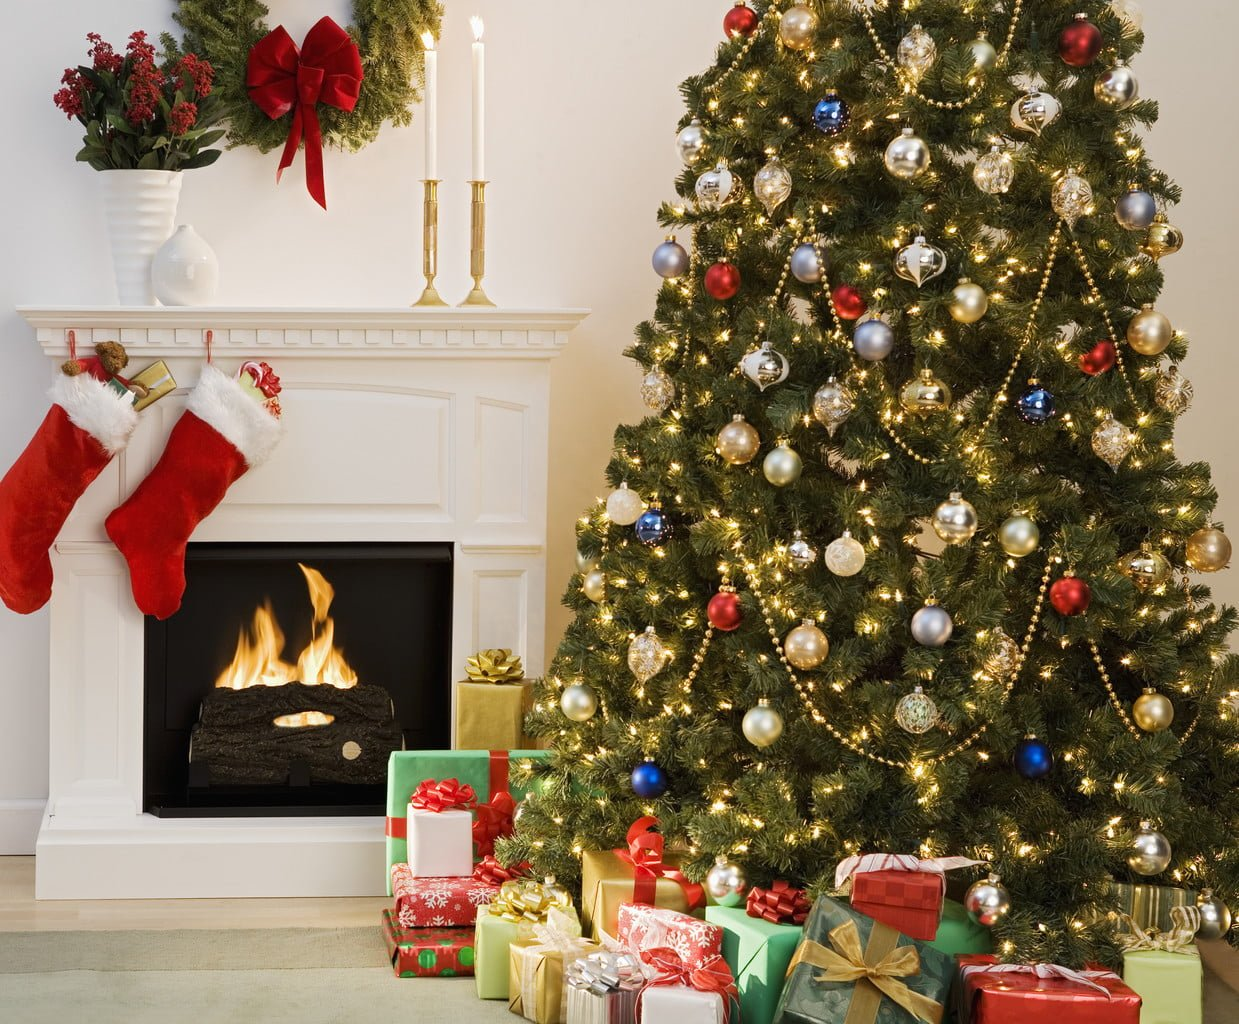 Where to place your Christmas tree in December 2014